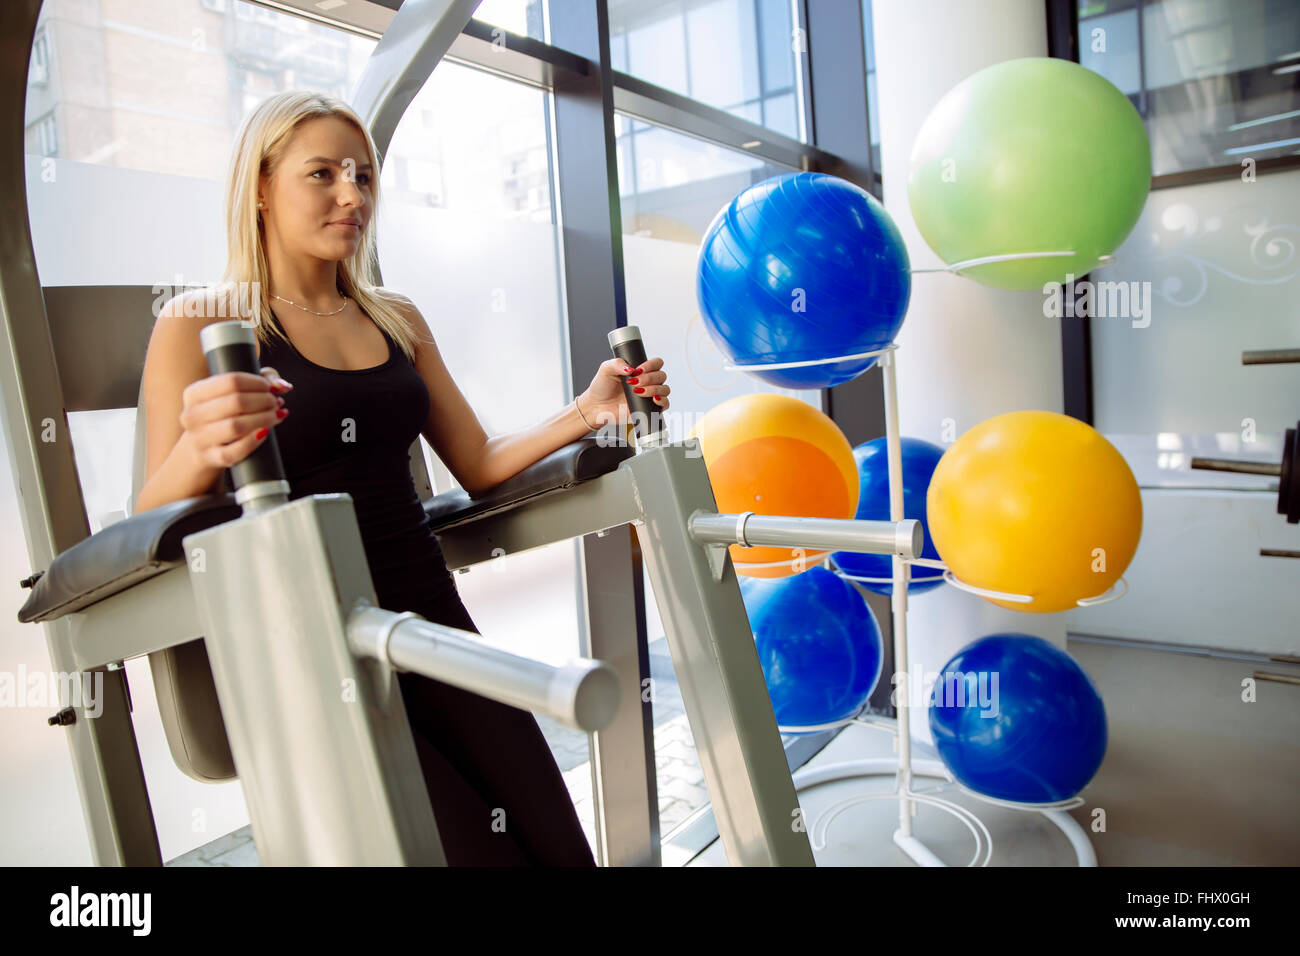 Beautiful woman training in gym and keeping body in shape - Stock Image